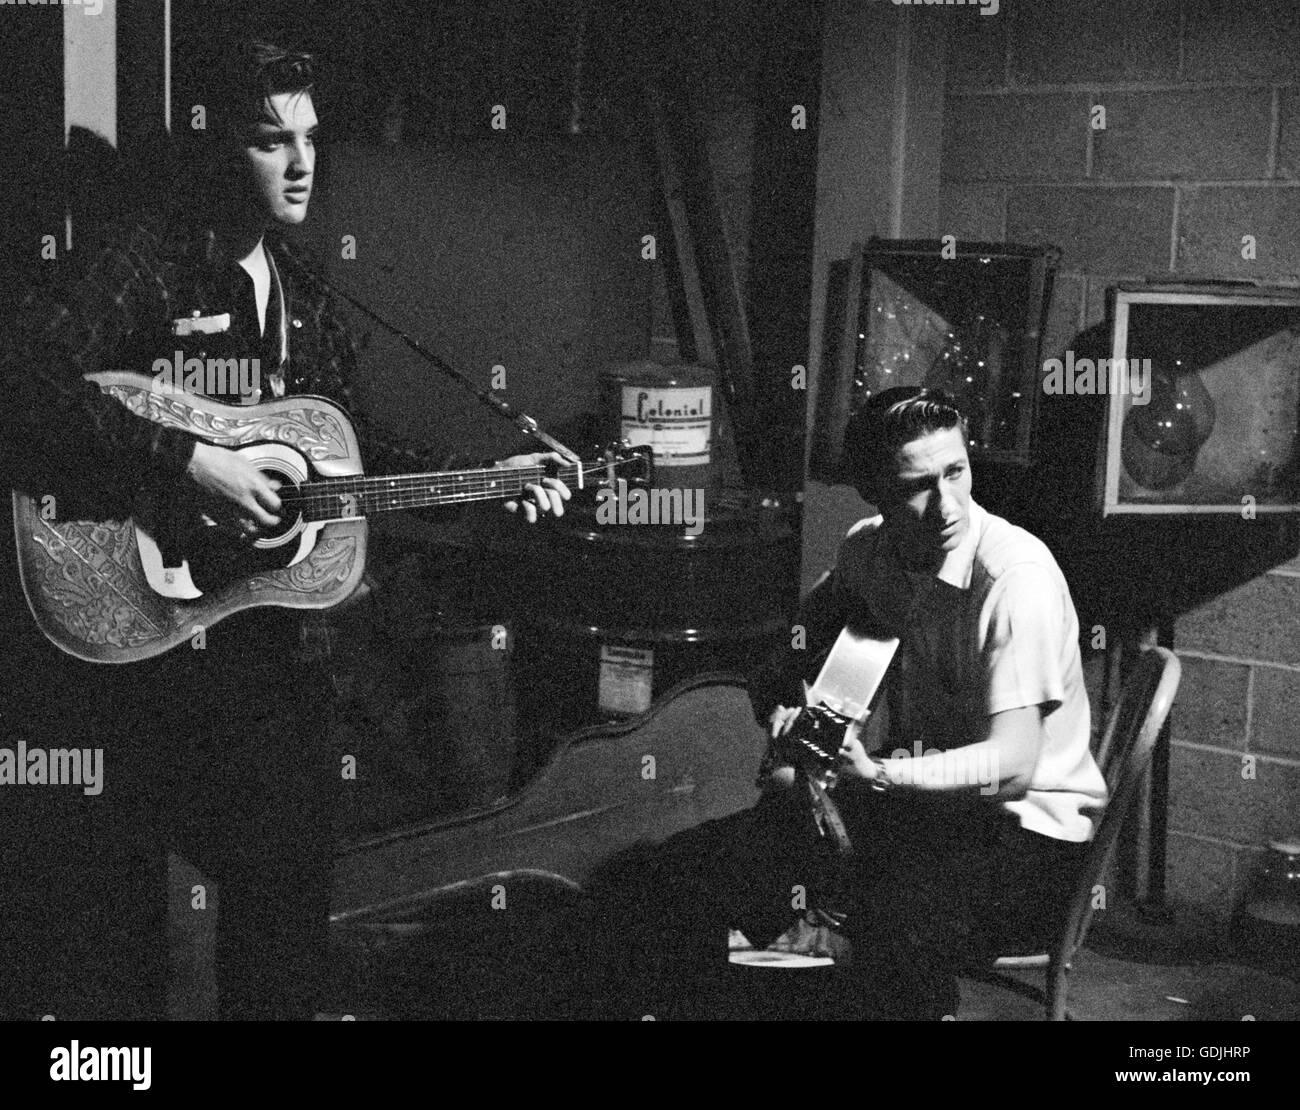 Elvis Presley and Scotty Moore, between performances, backstage at the University of Dayton Fieldhouse, May 27, - Stock Image